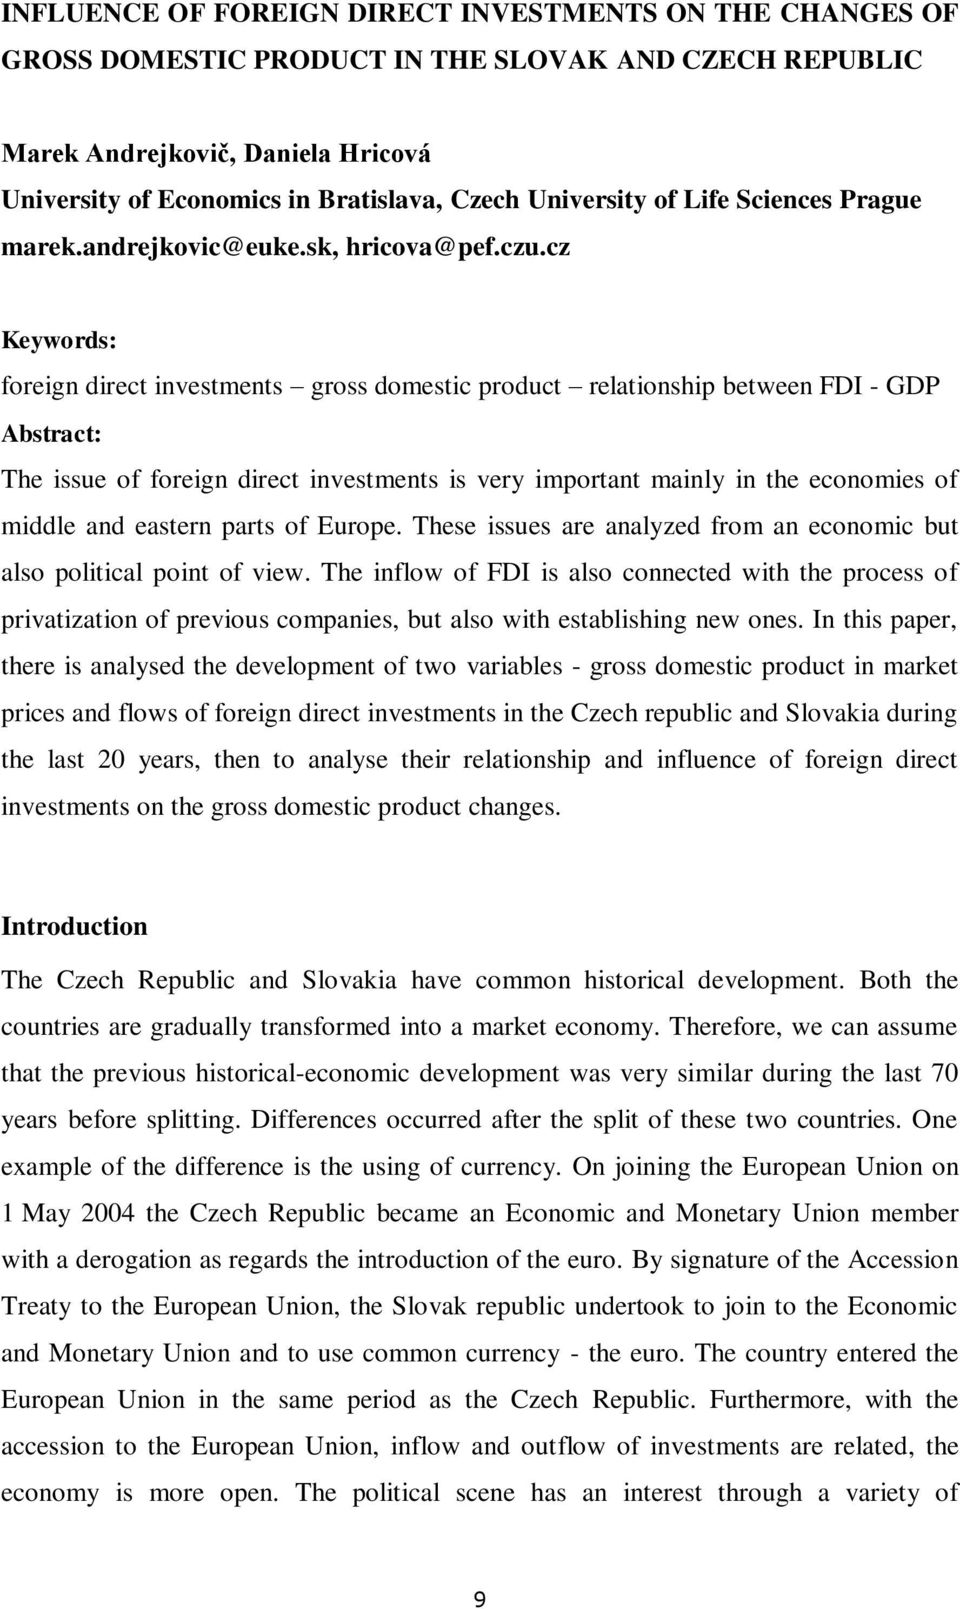 cz Keywords: foreign direct investments gross domestic product relationship between FDI - GDP Abstract: The issue of foreign direct investments is very important mainly in the economies of middle and